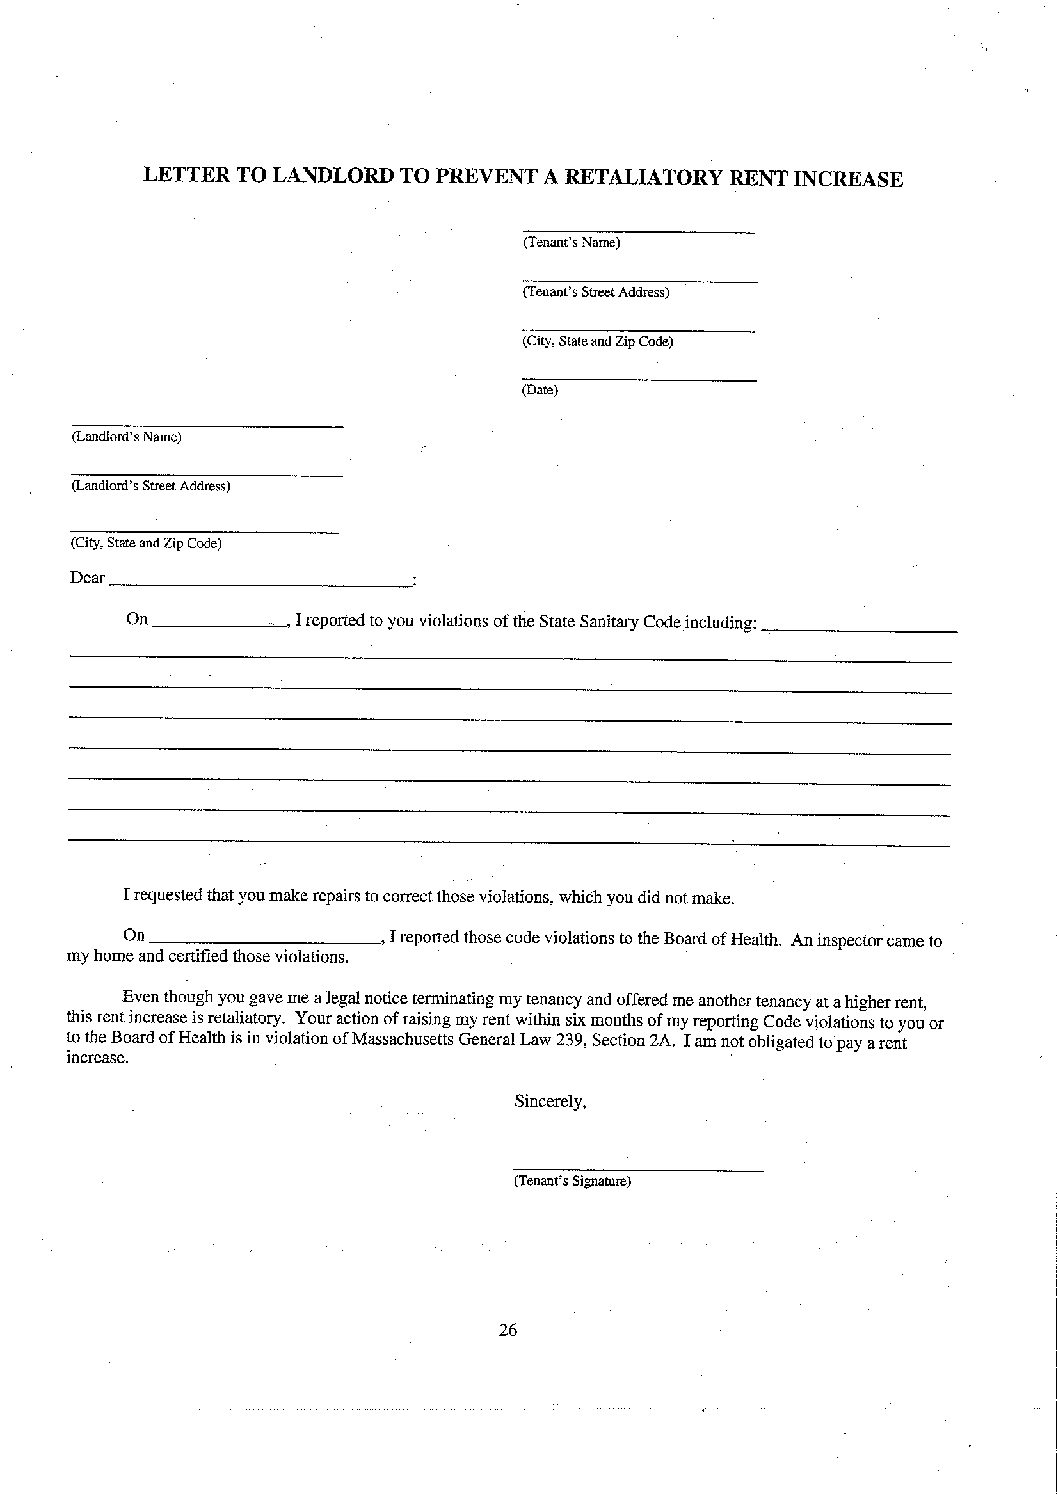 Landlord Rental Increase Letter from watchcdc.org